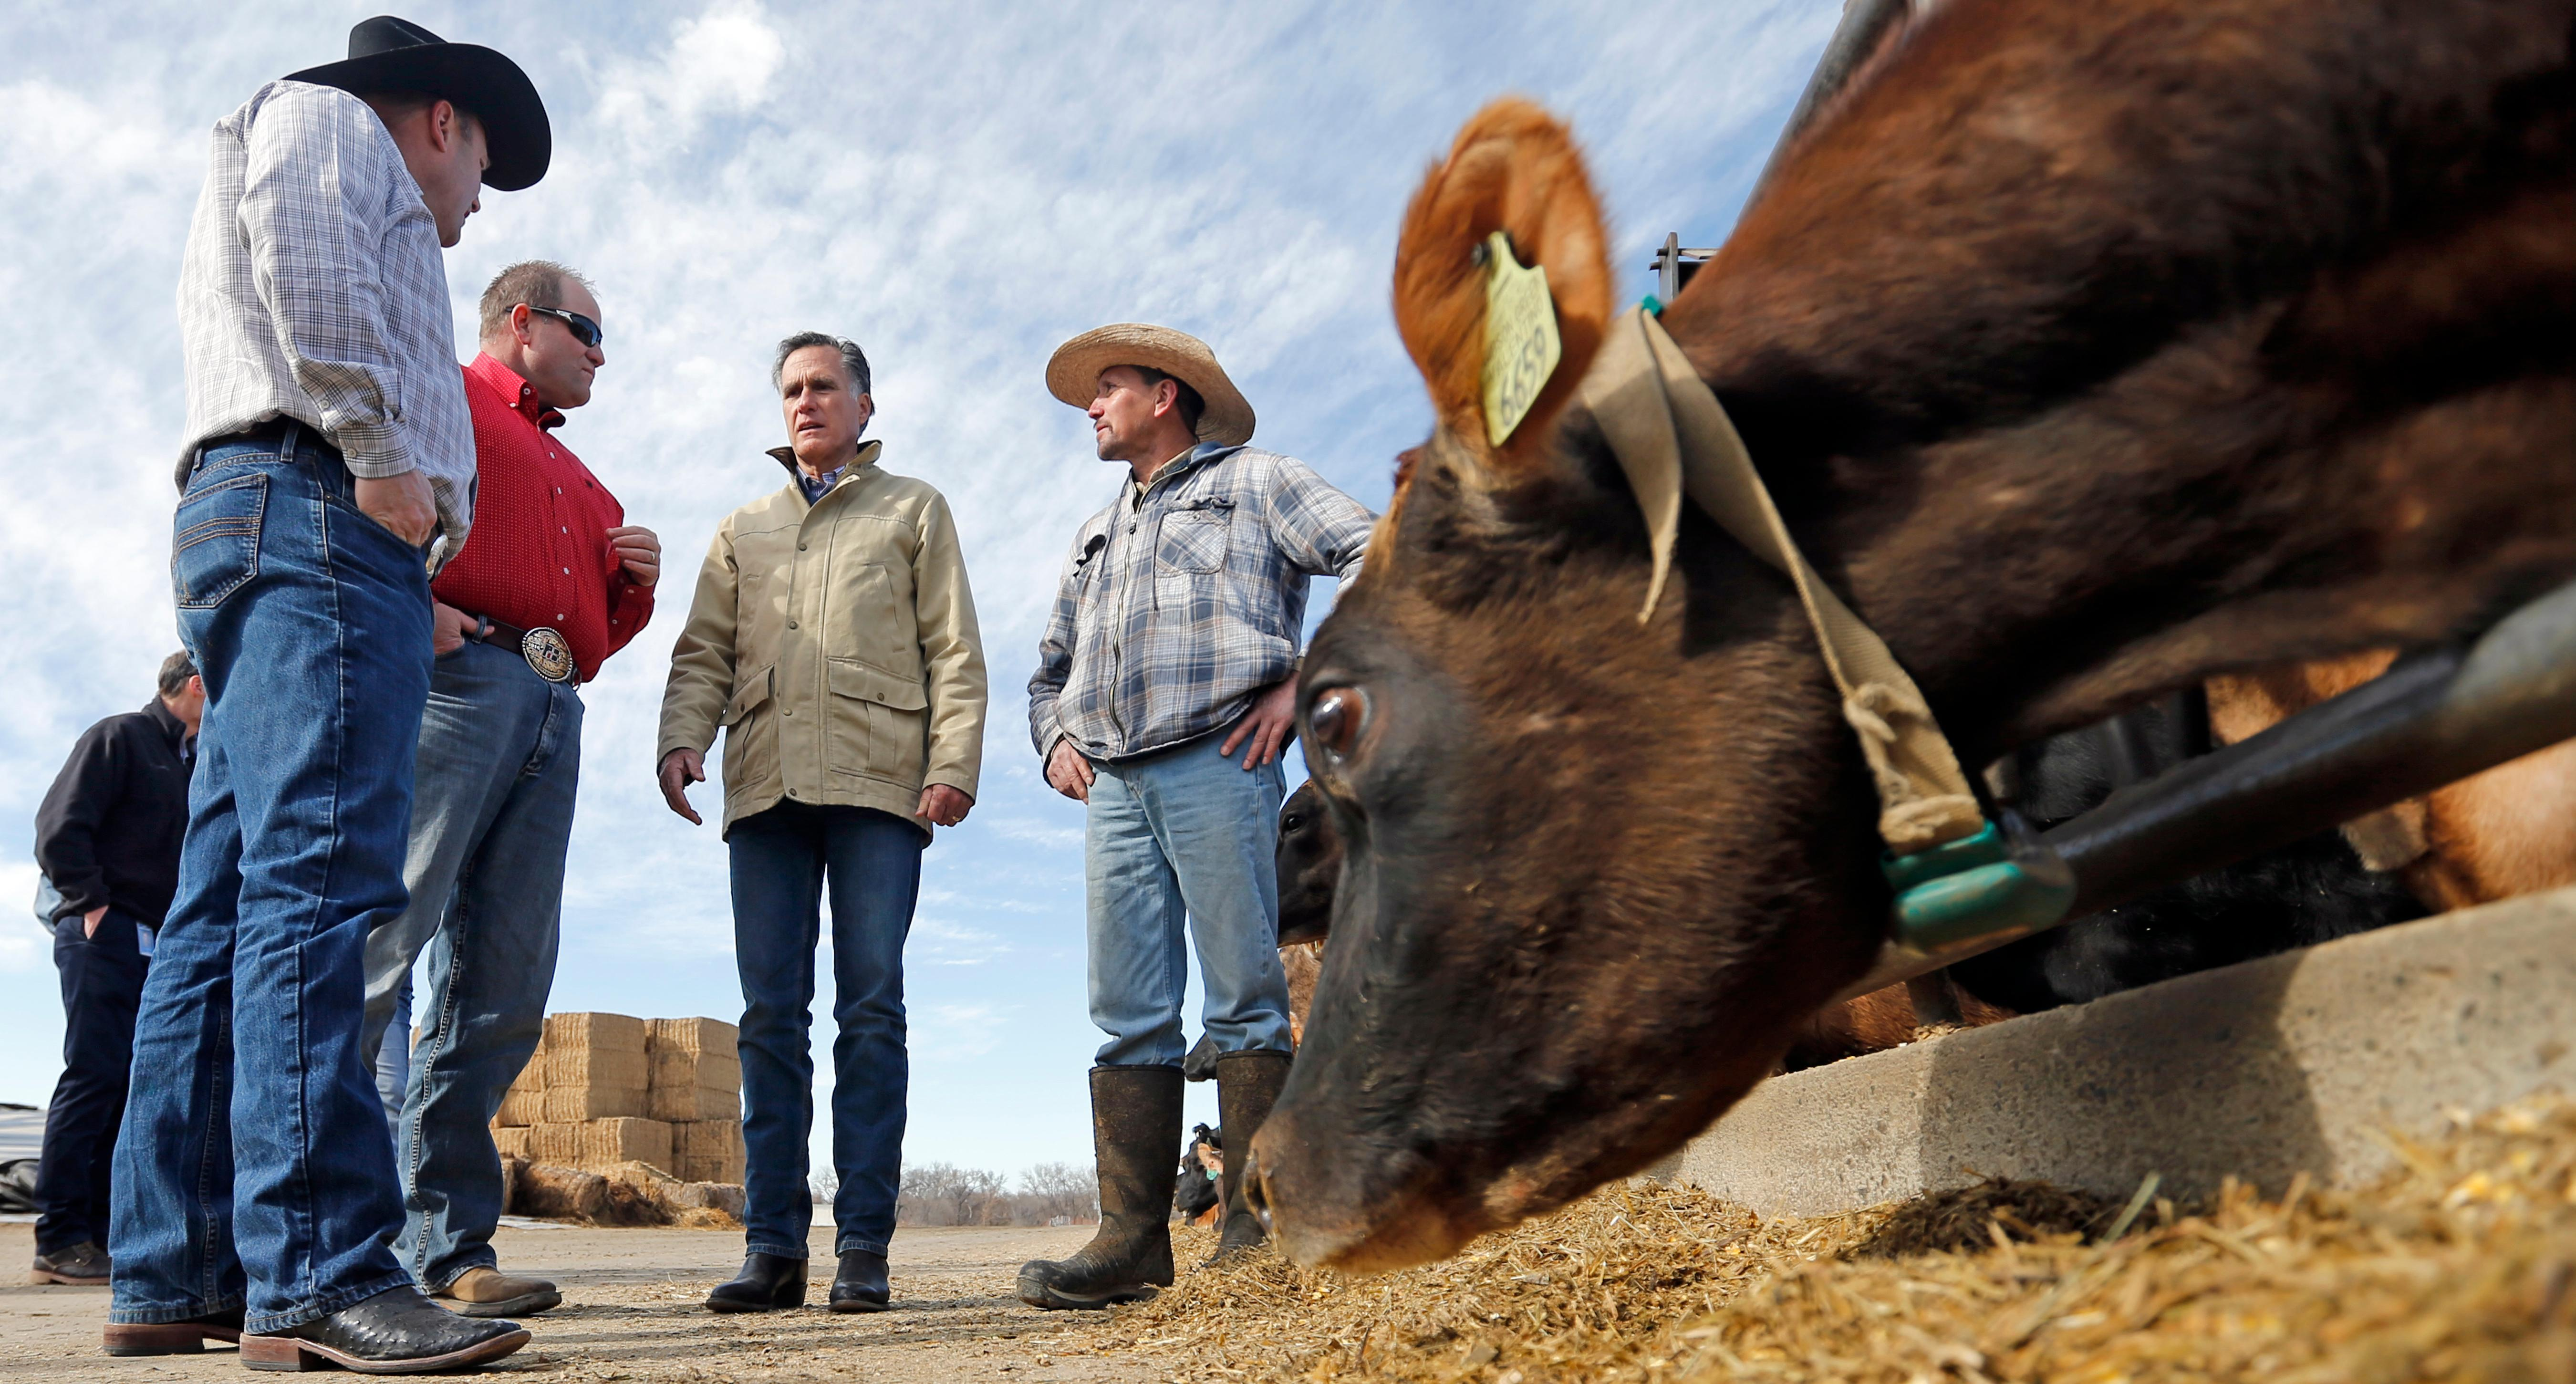 Former Republican presidential candidate Mitt Romney tours Gibson's Green Acres Dairy Friday, Feb. 16, 2018, in Ogden, Utah. The 2012 Republican presidential candidate plans to bid for the seat being vacated by retiring seven-term Utah Sen. Orrin Hatch. (AP Photo/Rick Bowmer)